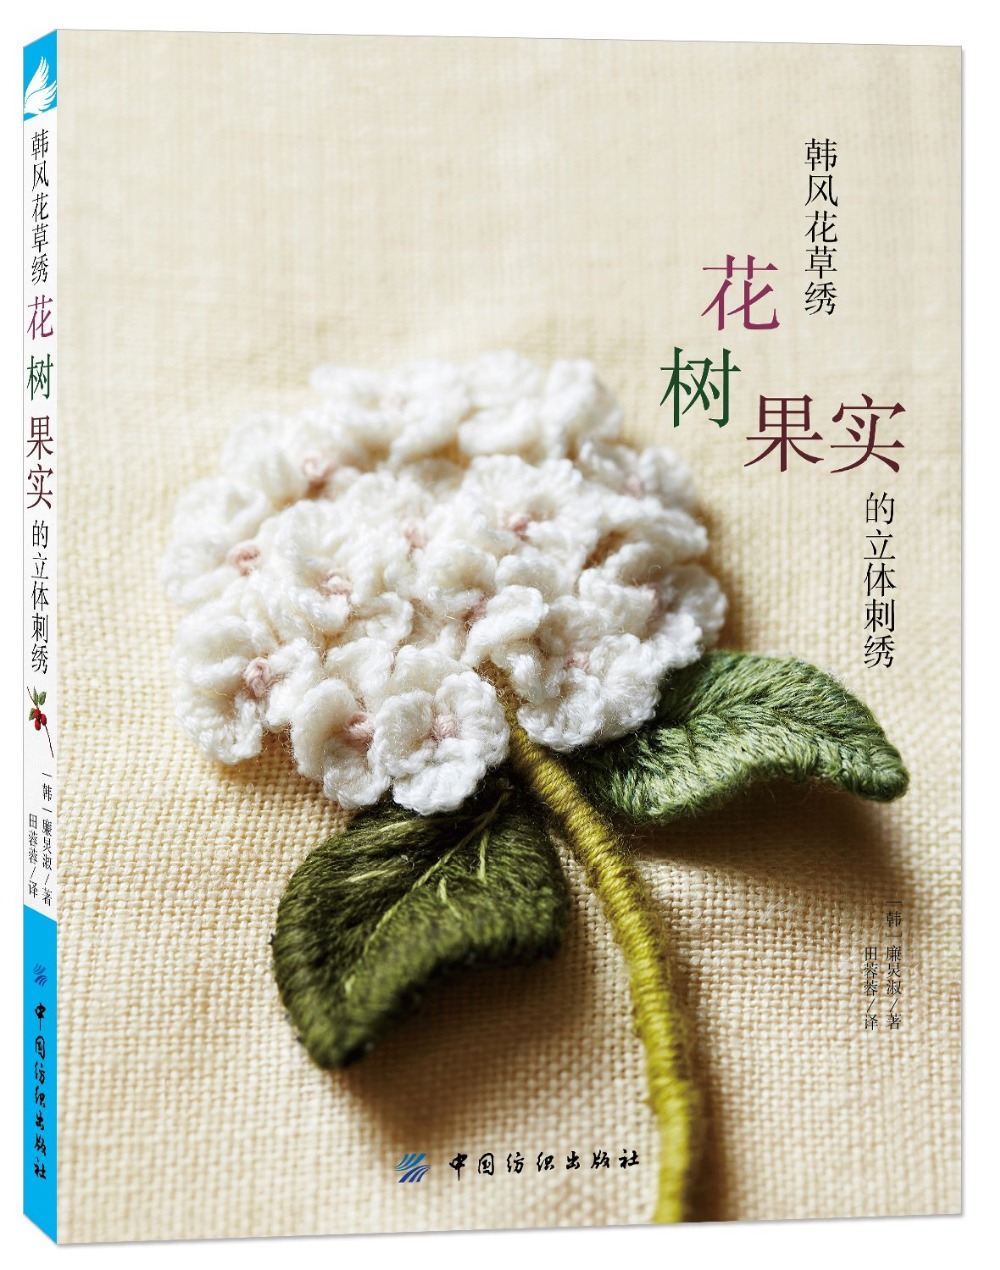 A three-dimensional embroidery of flowers, trees, and fruits / Chinese embroidery Handmade Art Design Book vitacci vitacci куртка серая